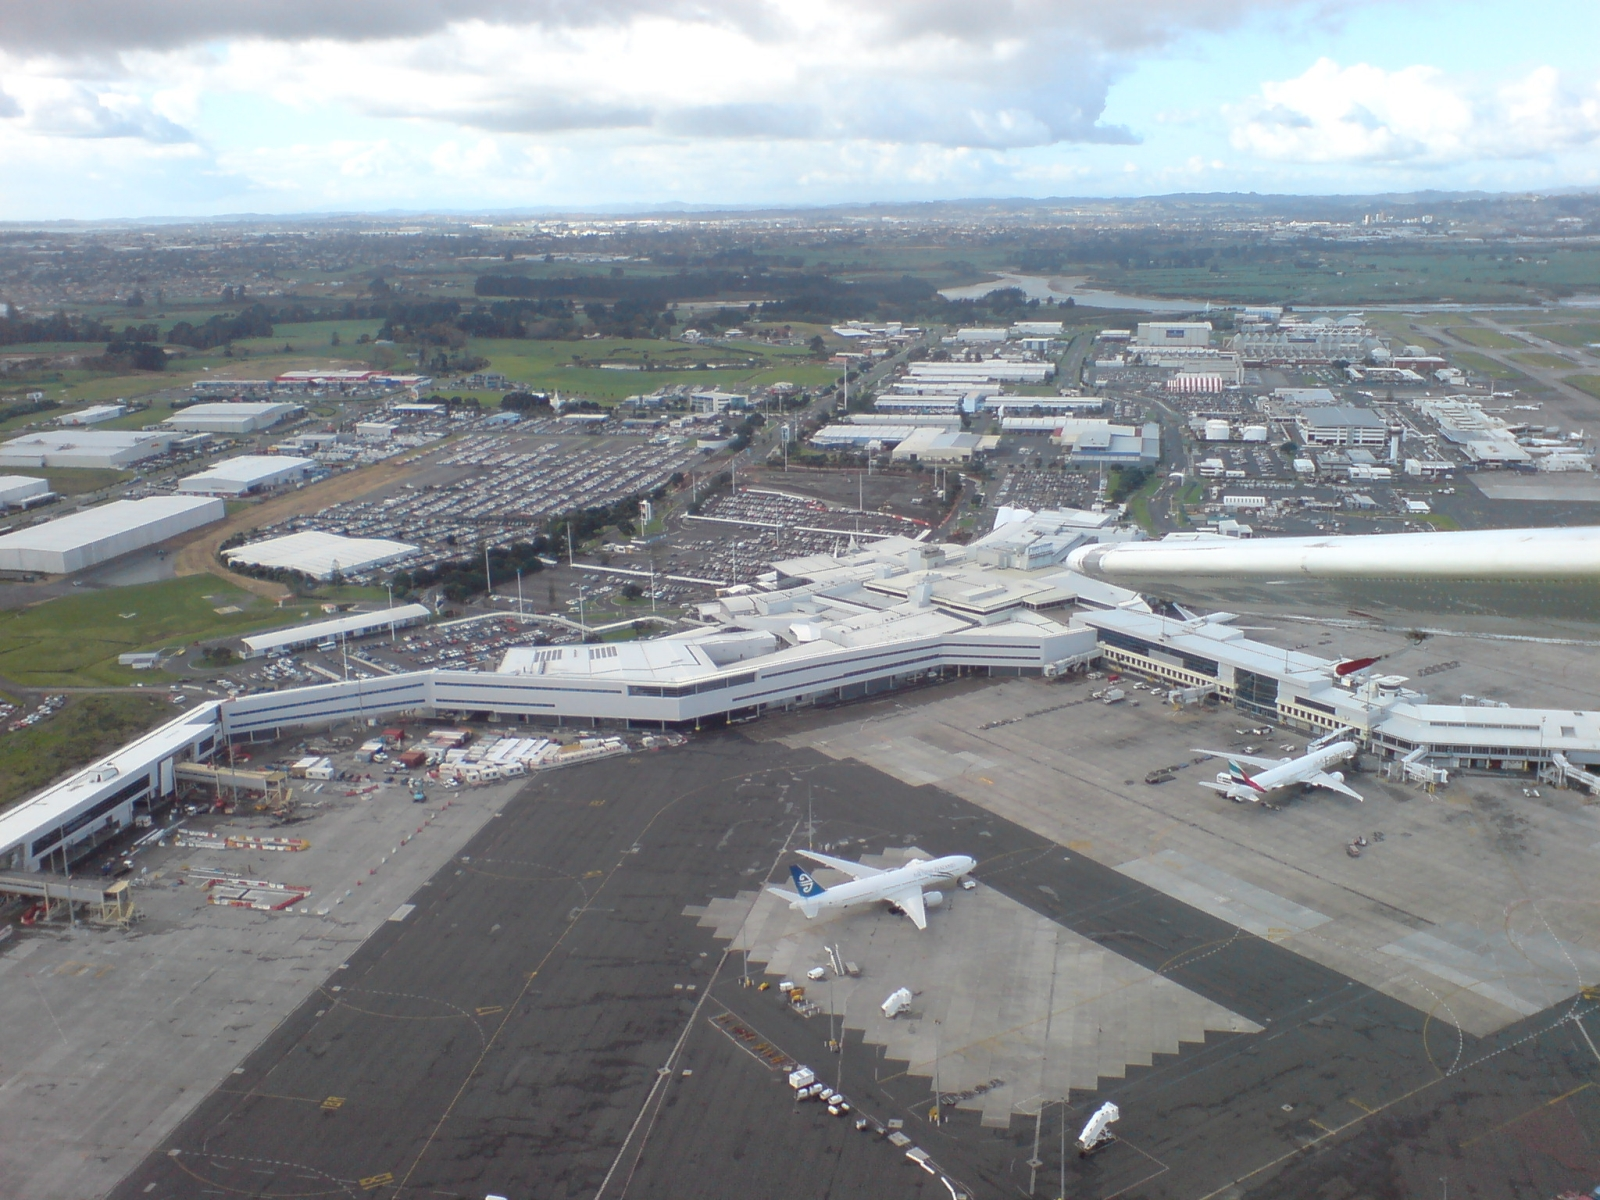 Auckland_Airport_Seen_From_Light_Plane_0